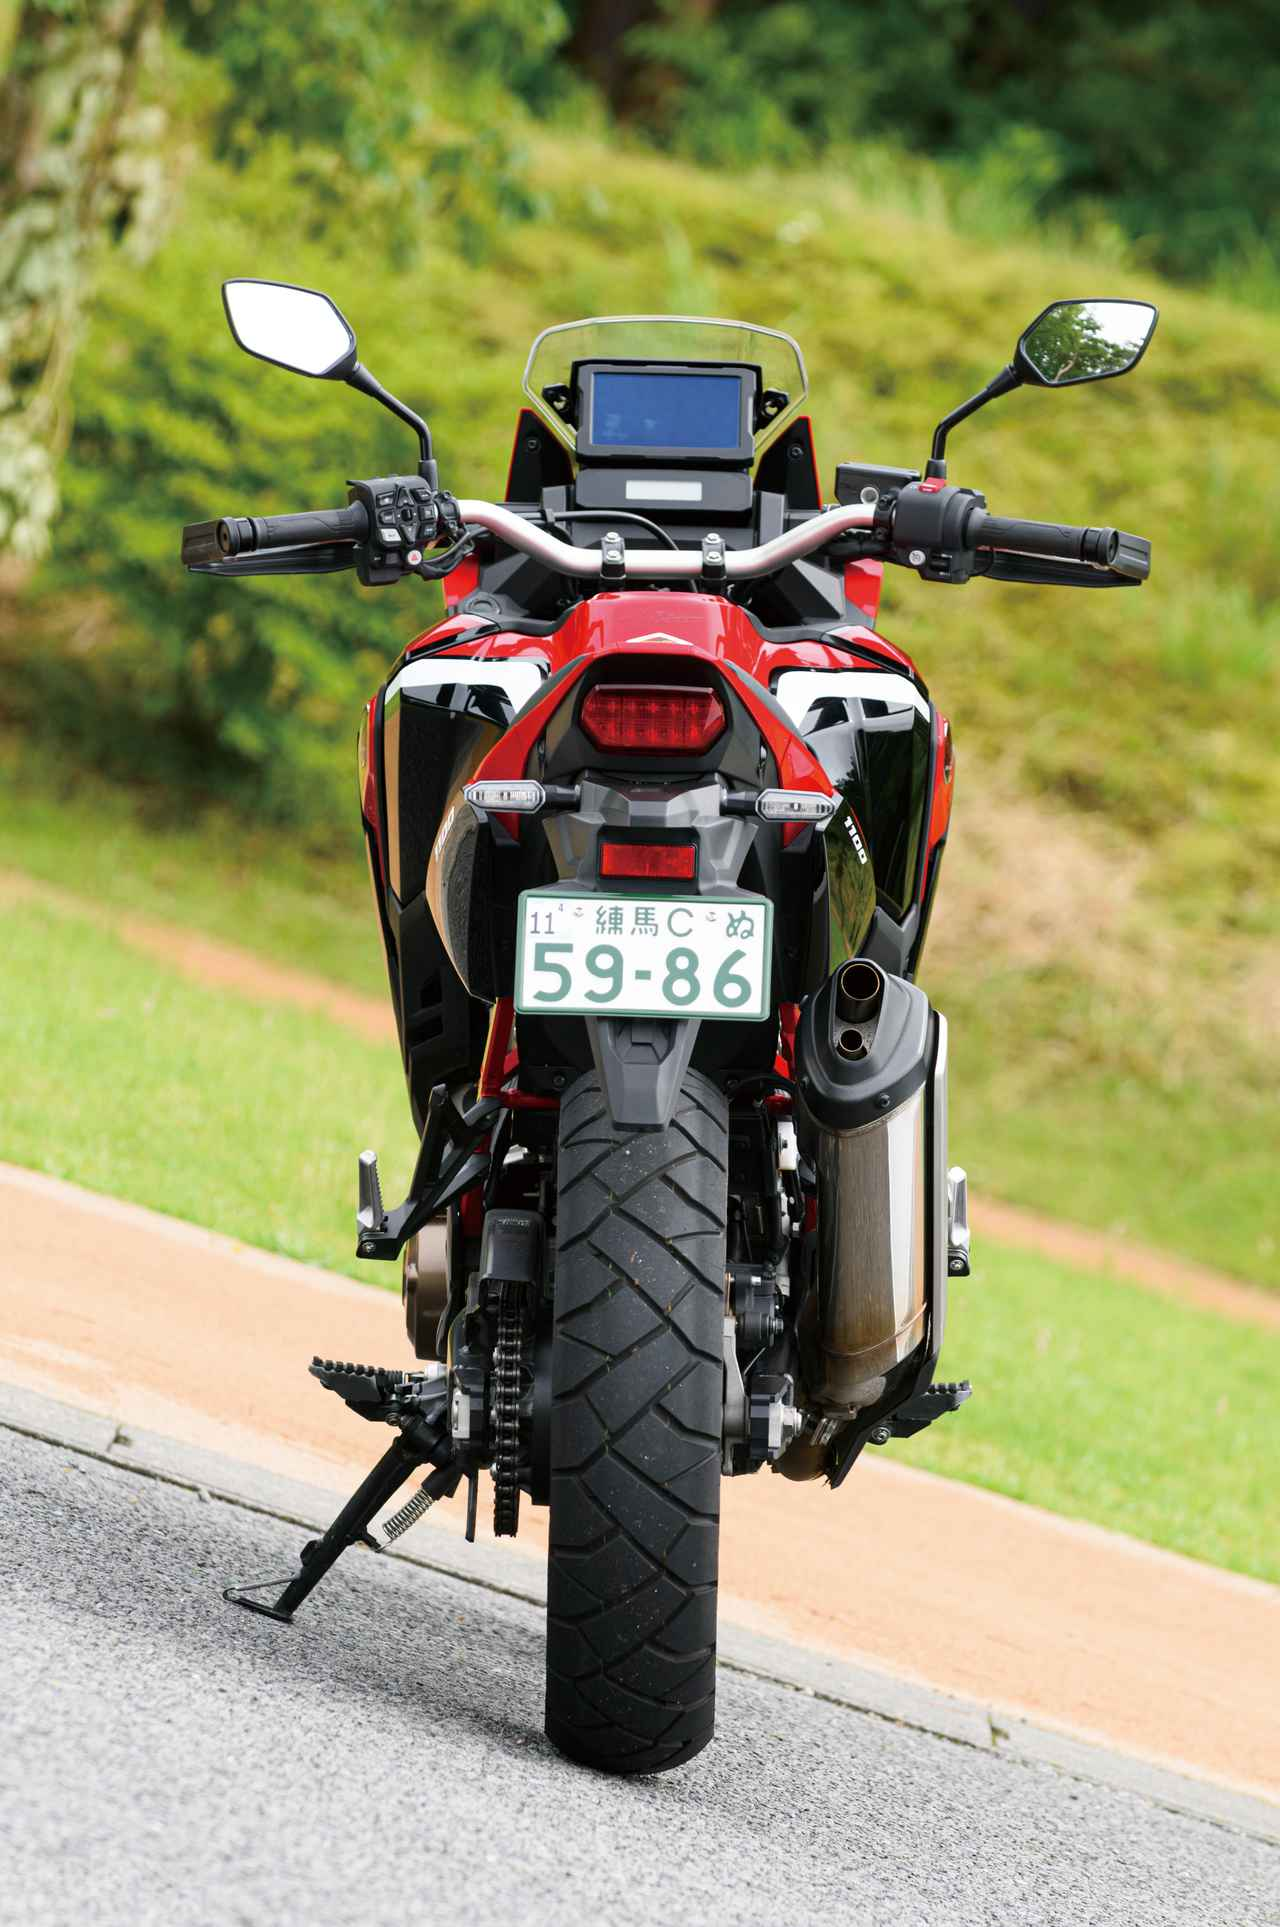 Images : 3番目の画像 - Honda CRF1100L AfricaTwin - LAWRENCE - Motorcycle x Cars + α = Your Life.